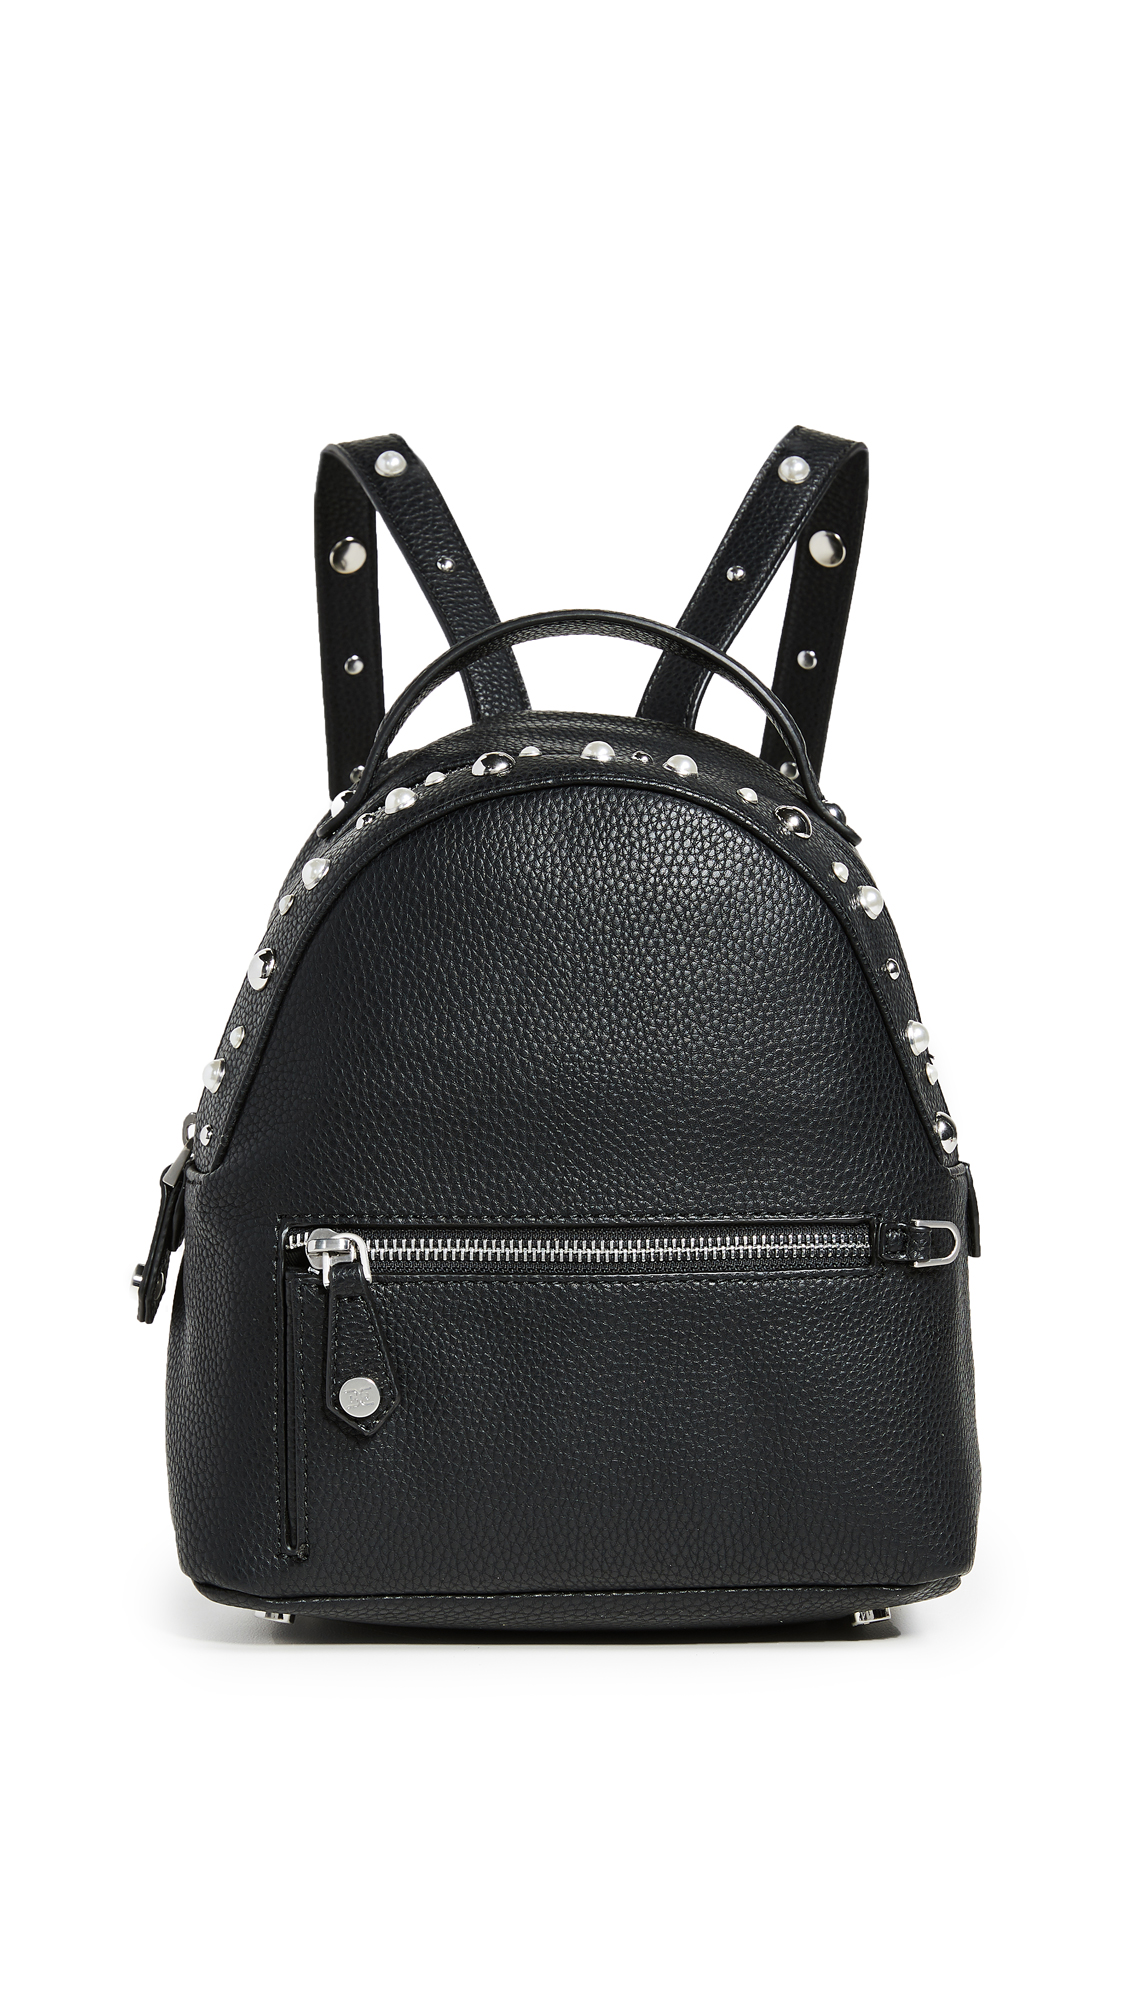 JESS BACKPACK from Shopbop